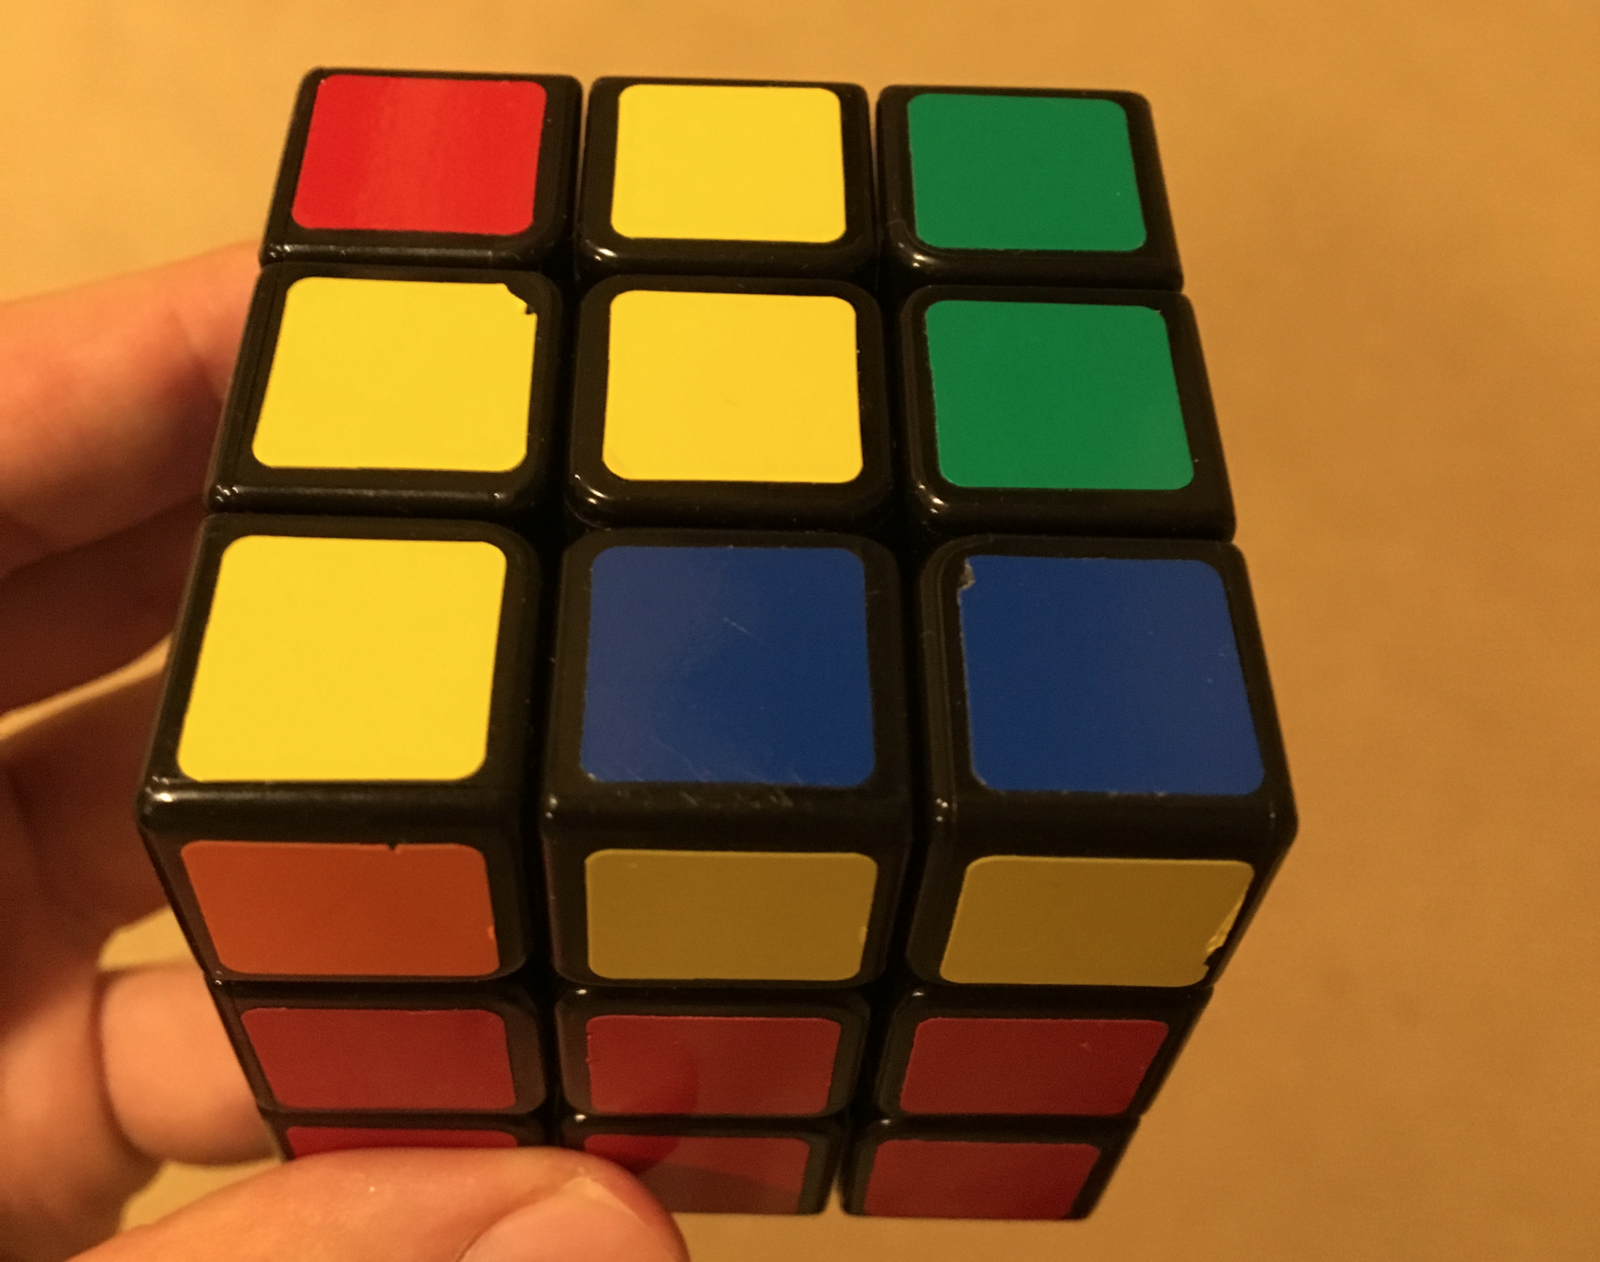 At This Point, The White Side Ispletely Solved And The First Two Layers  Of The Cube (from The Bottom) Are Solved Thus, I Only Need To Solve The  Last